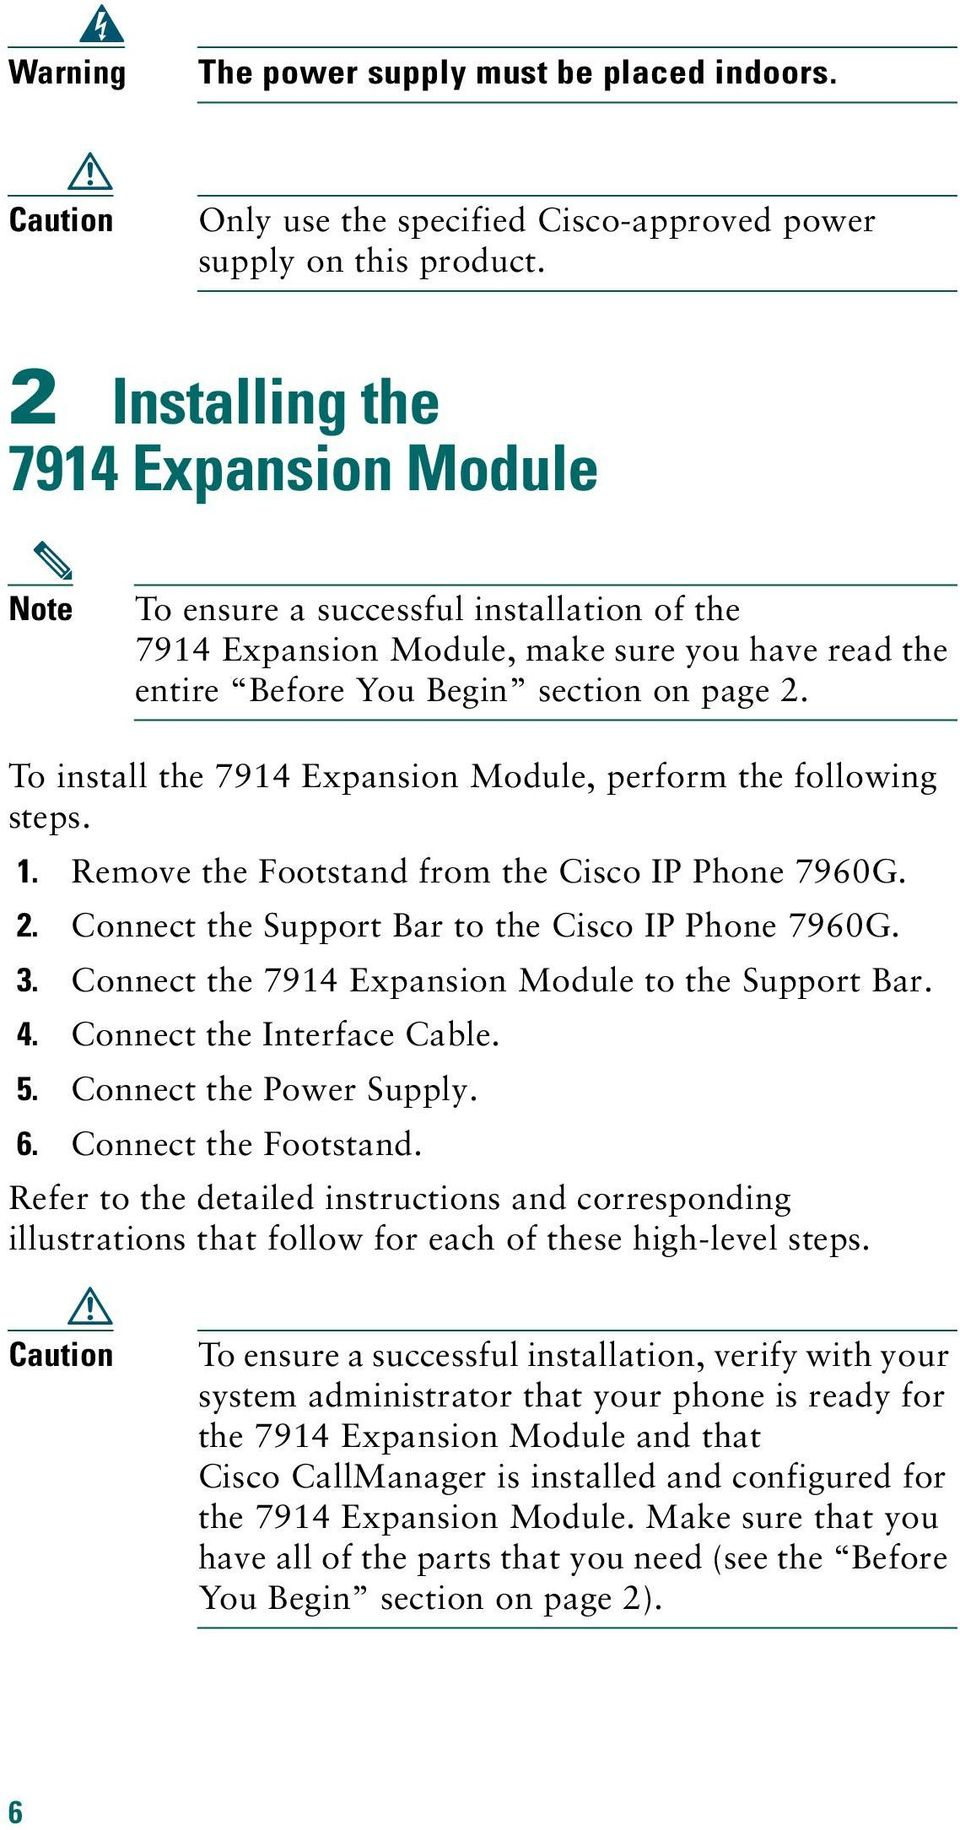 To install the 7914 Expansion Module, perform the following steps. 1. Remove the Footstand from the Cisco IP Phone 7960G. 2. Connect the Support Bar to the Cisco IP Phone 7960G. 3.